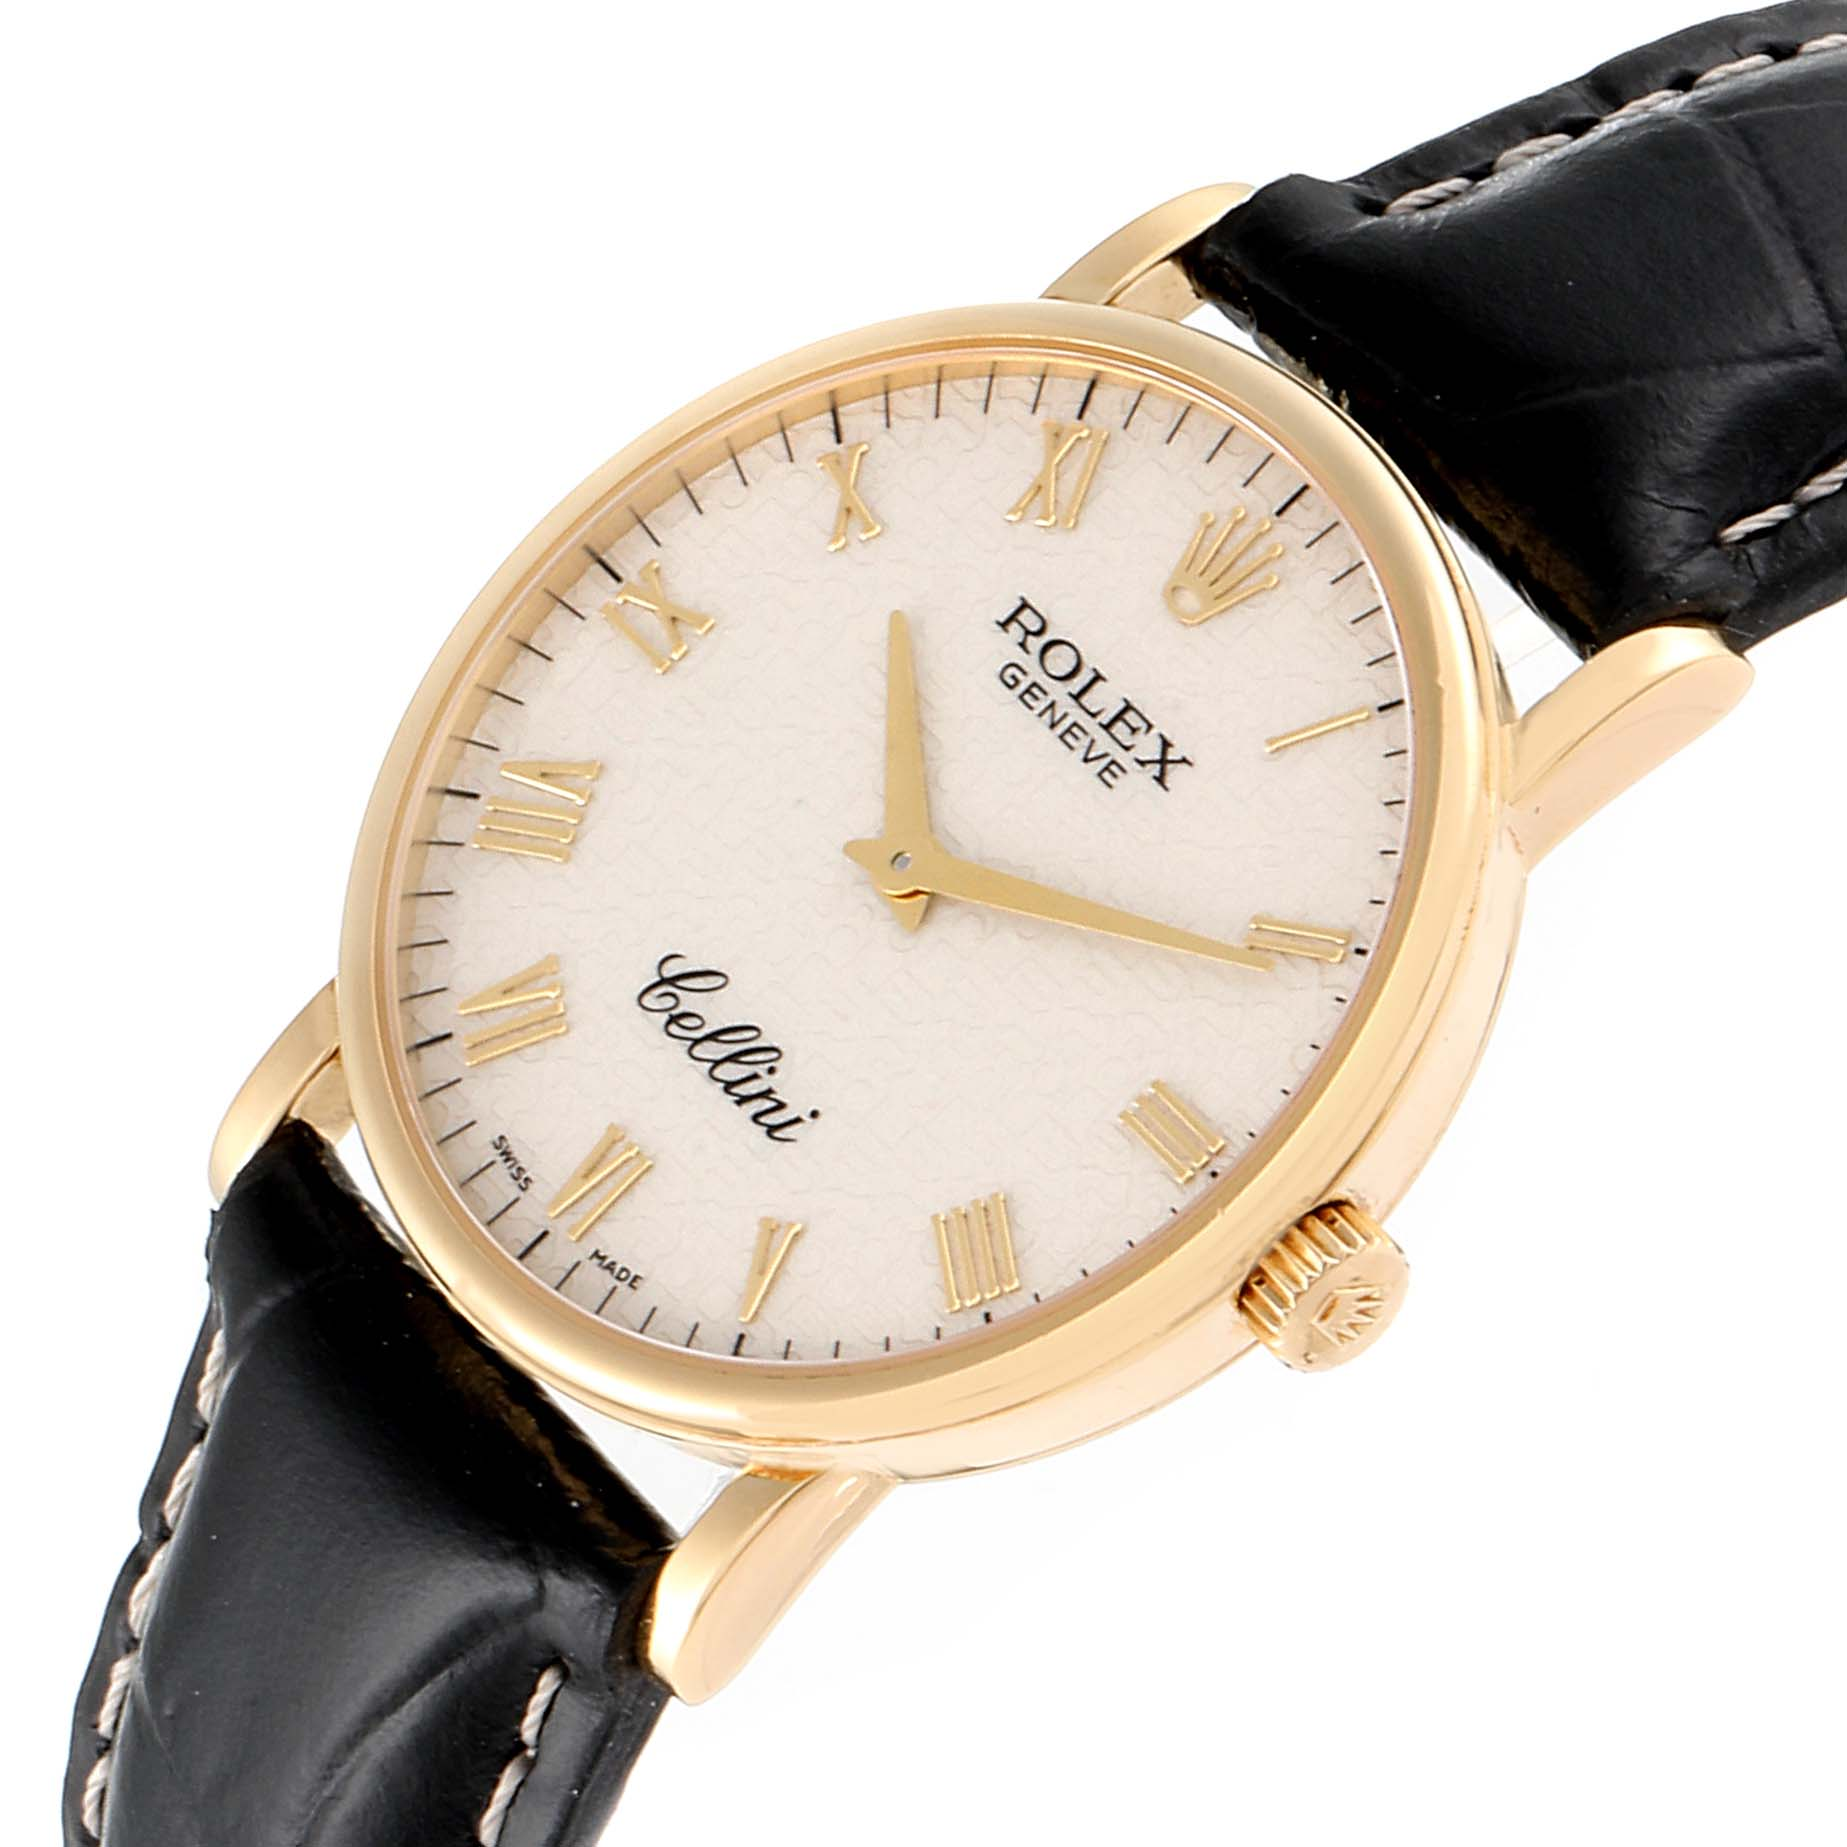 Rolex Cellini Classic Yellow Gold Anniversary Dial Mens Watch 5115 SwissWatchExpo